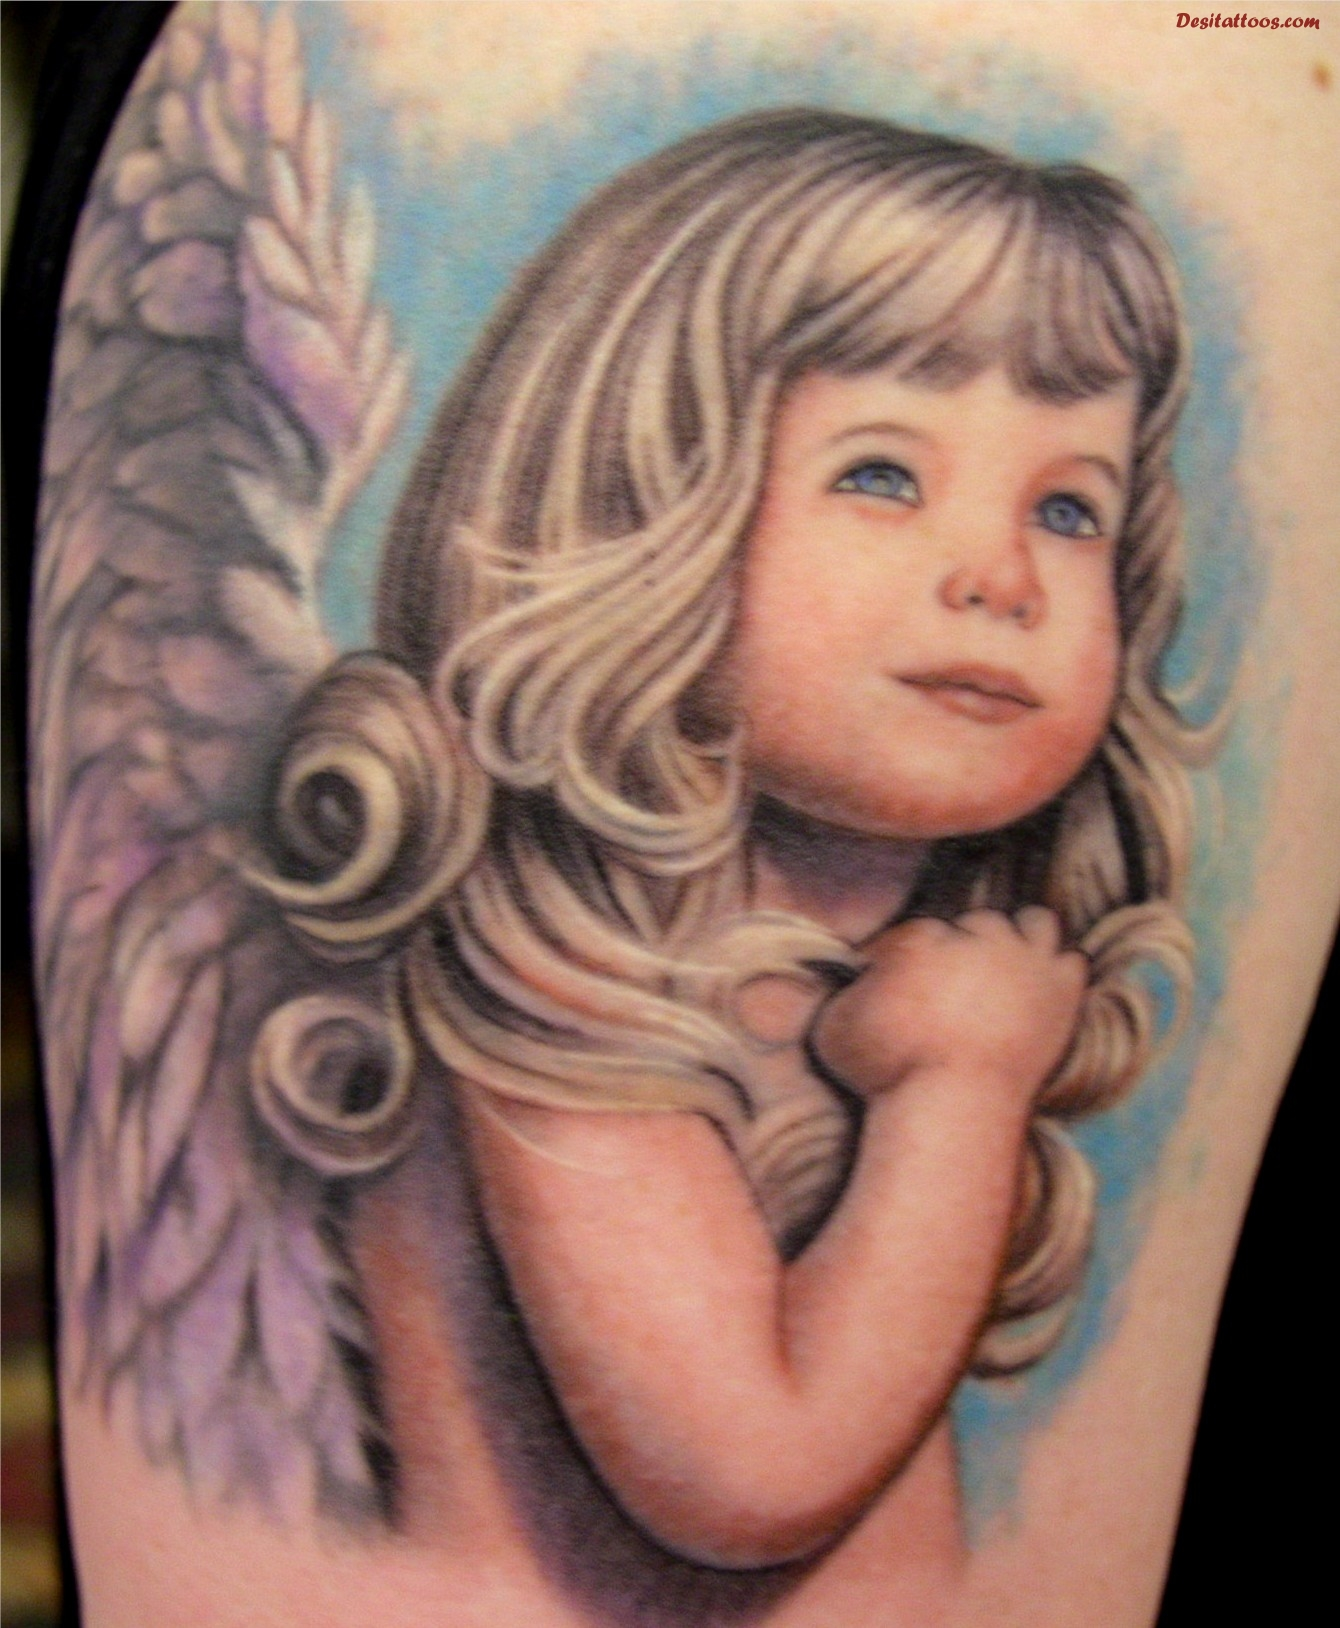 Tattoo Images of Baby Angels Colored Baby Angel Girl Tattoo